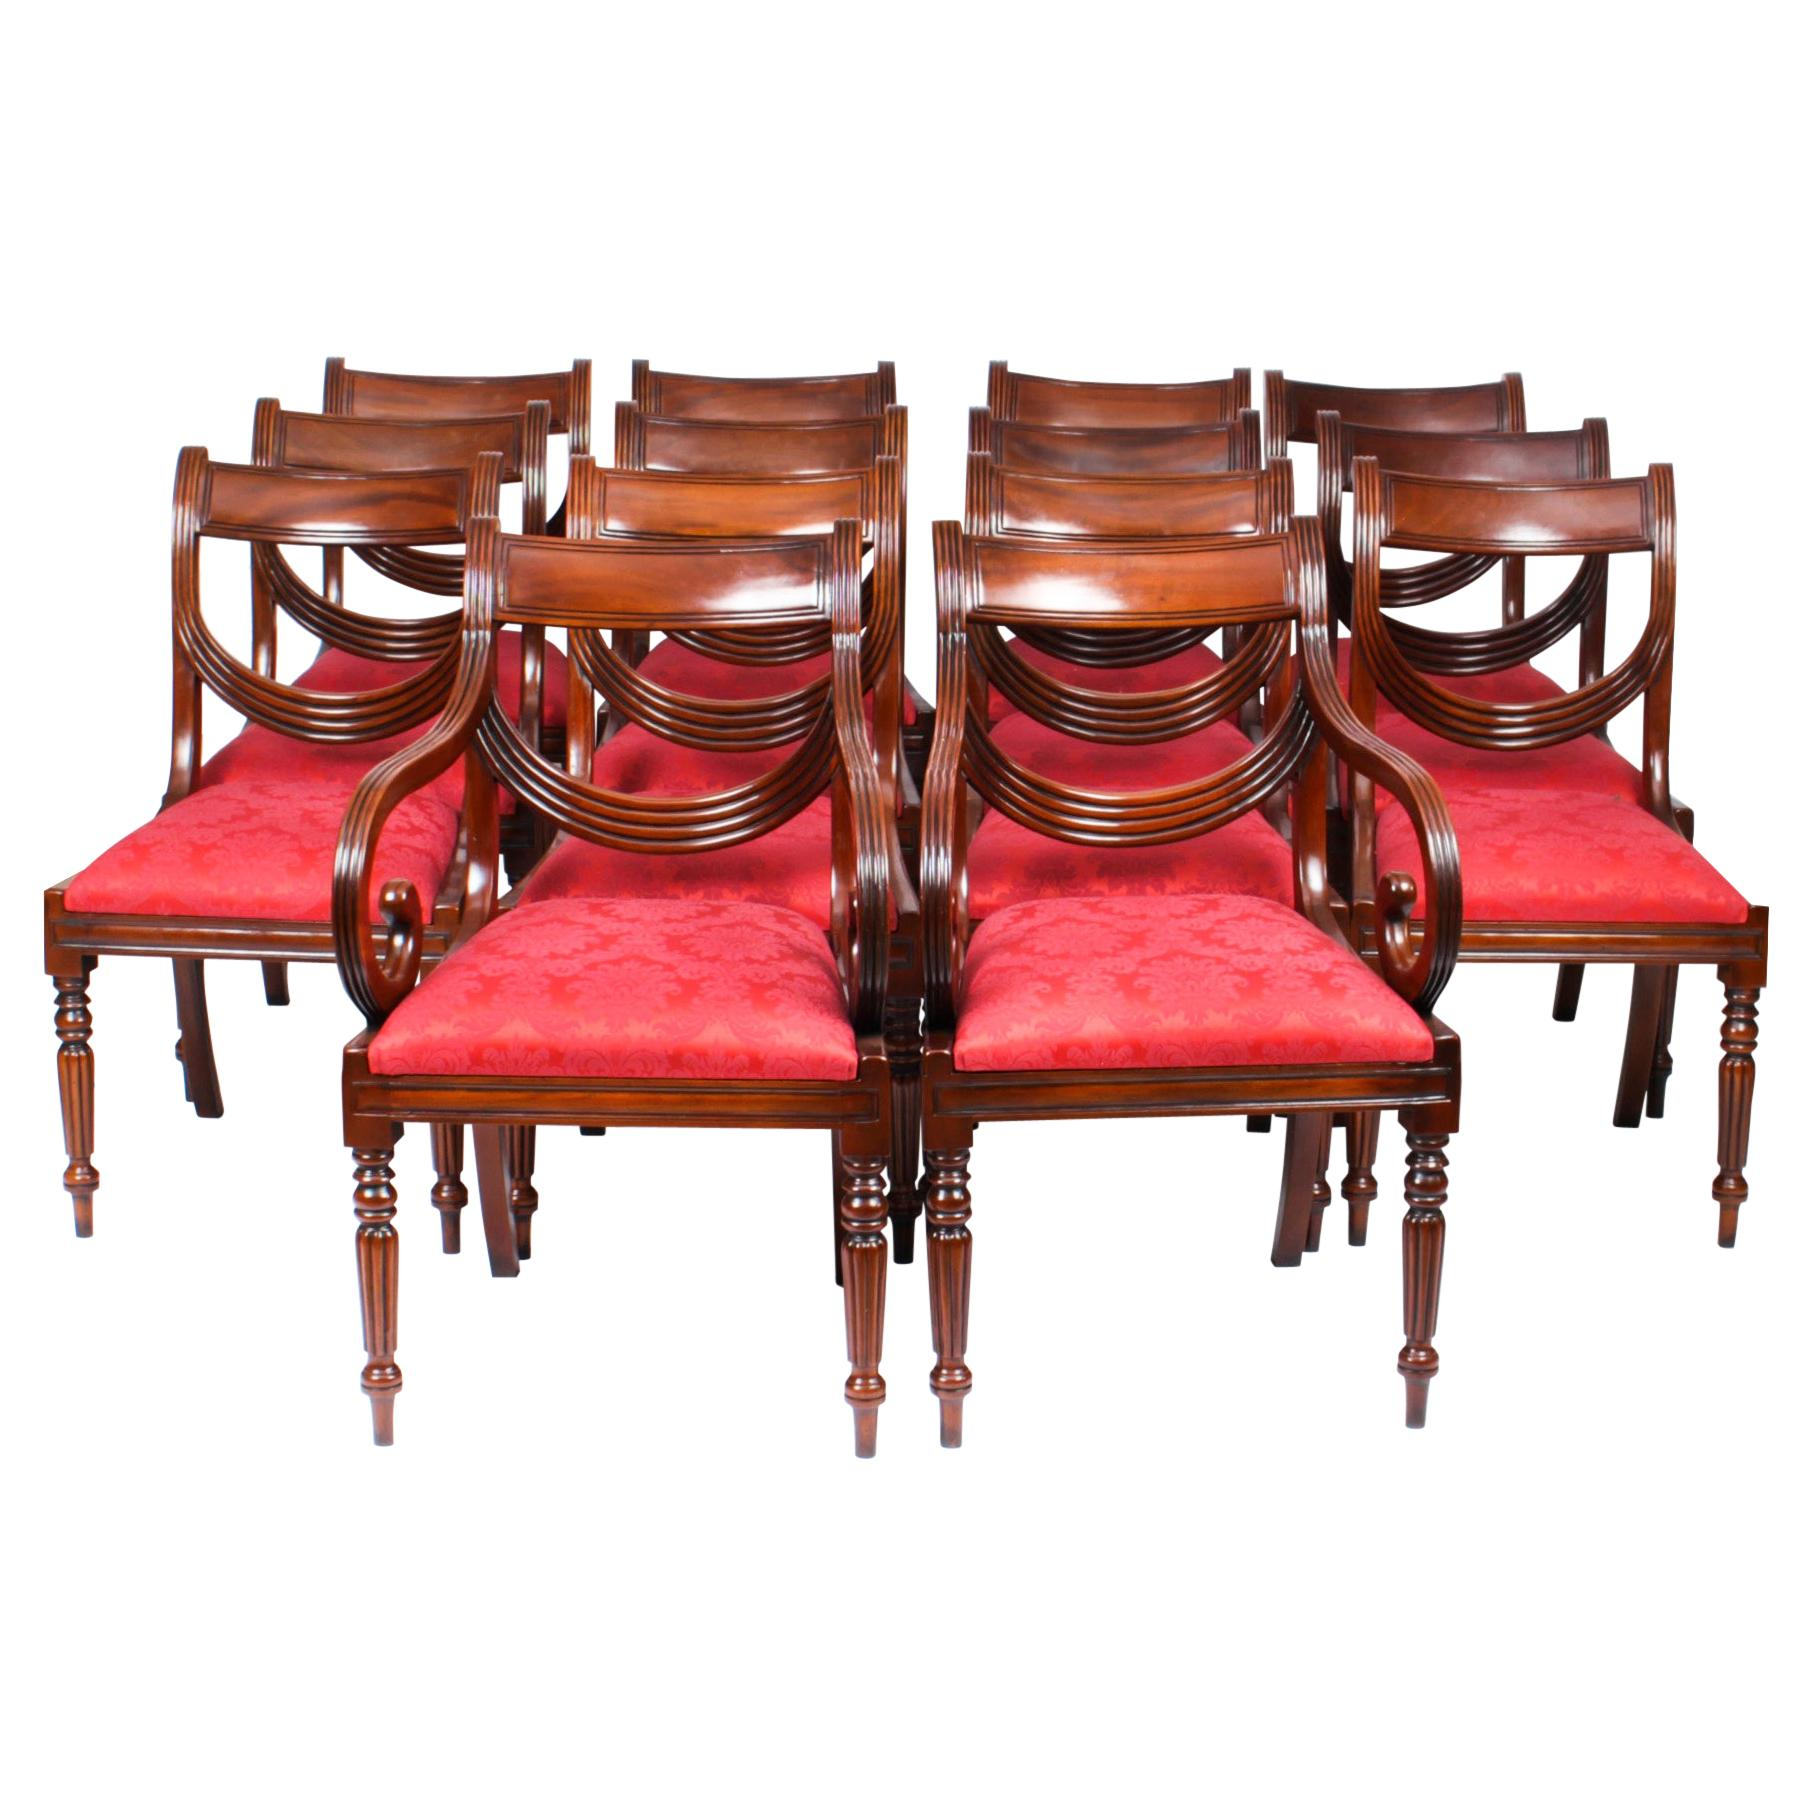 Vintage Set 14 Regency Revival Swag Back Dining Chairs, 20th Century